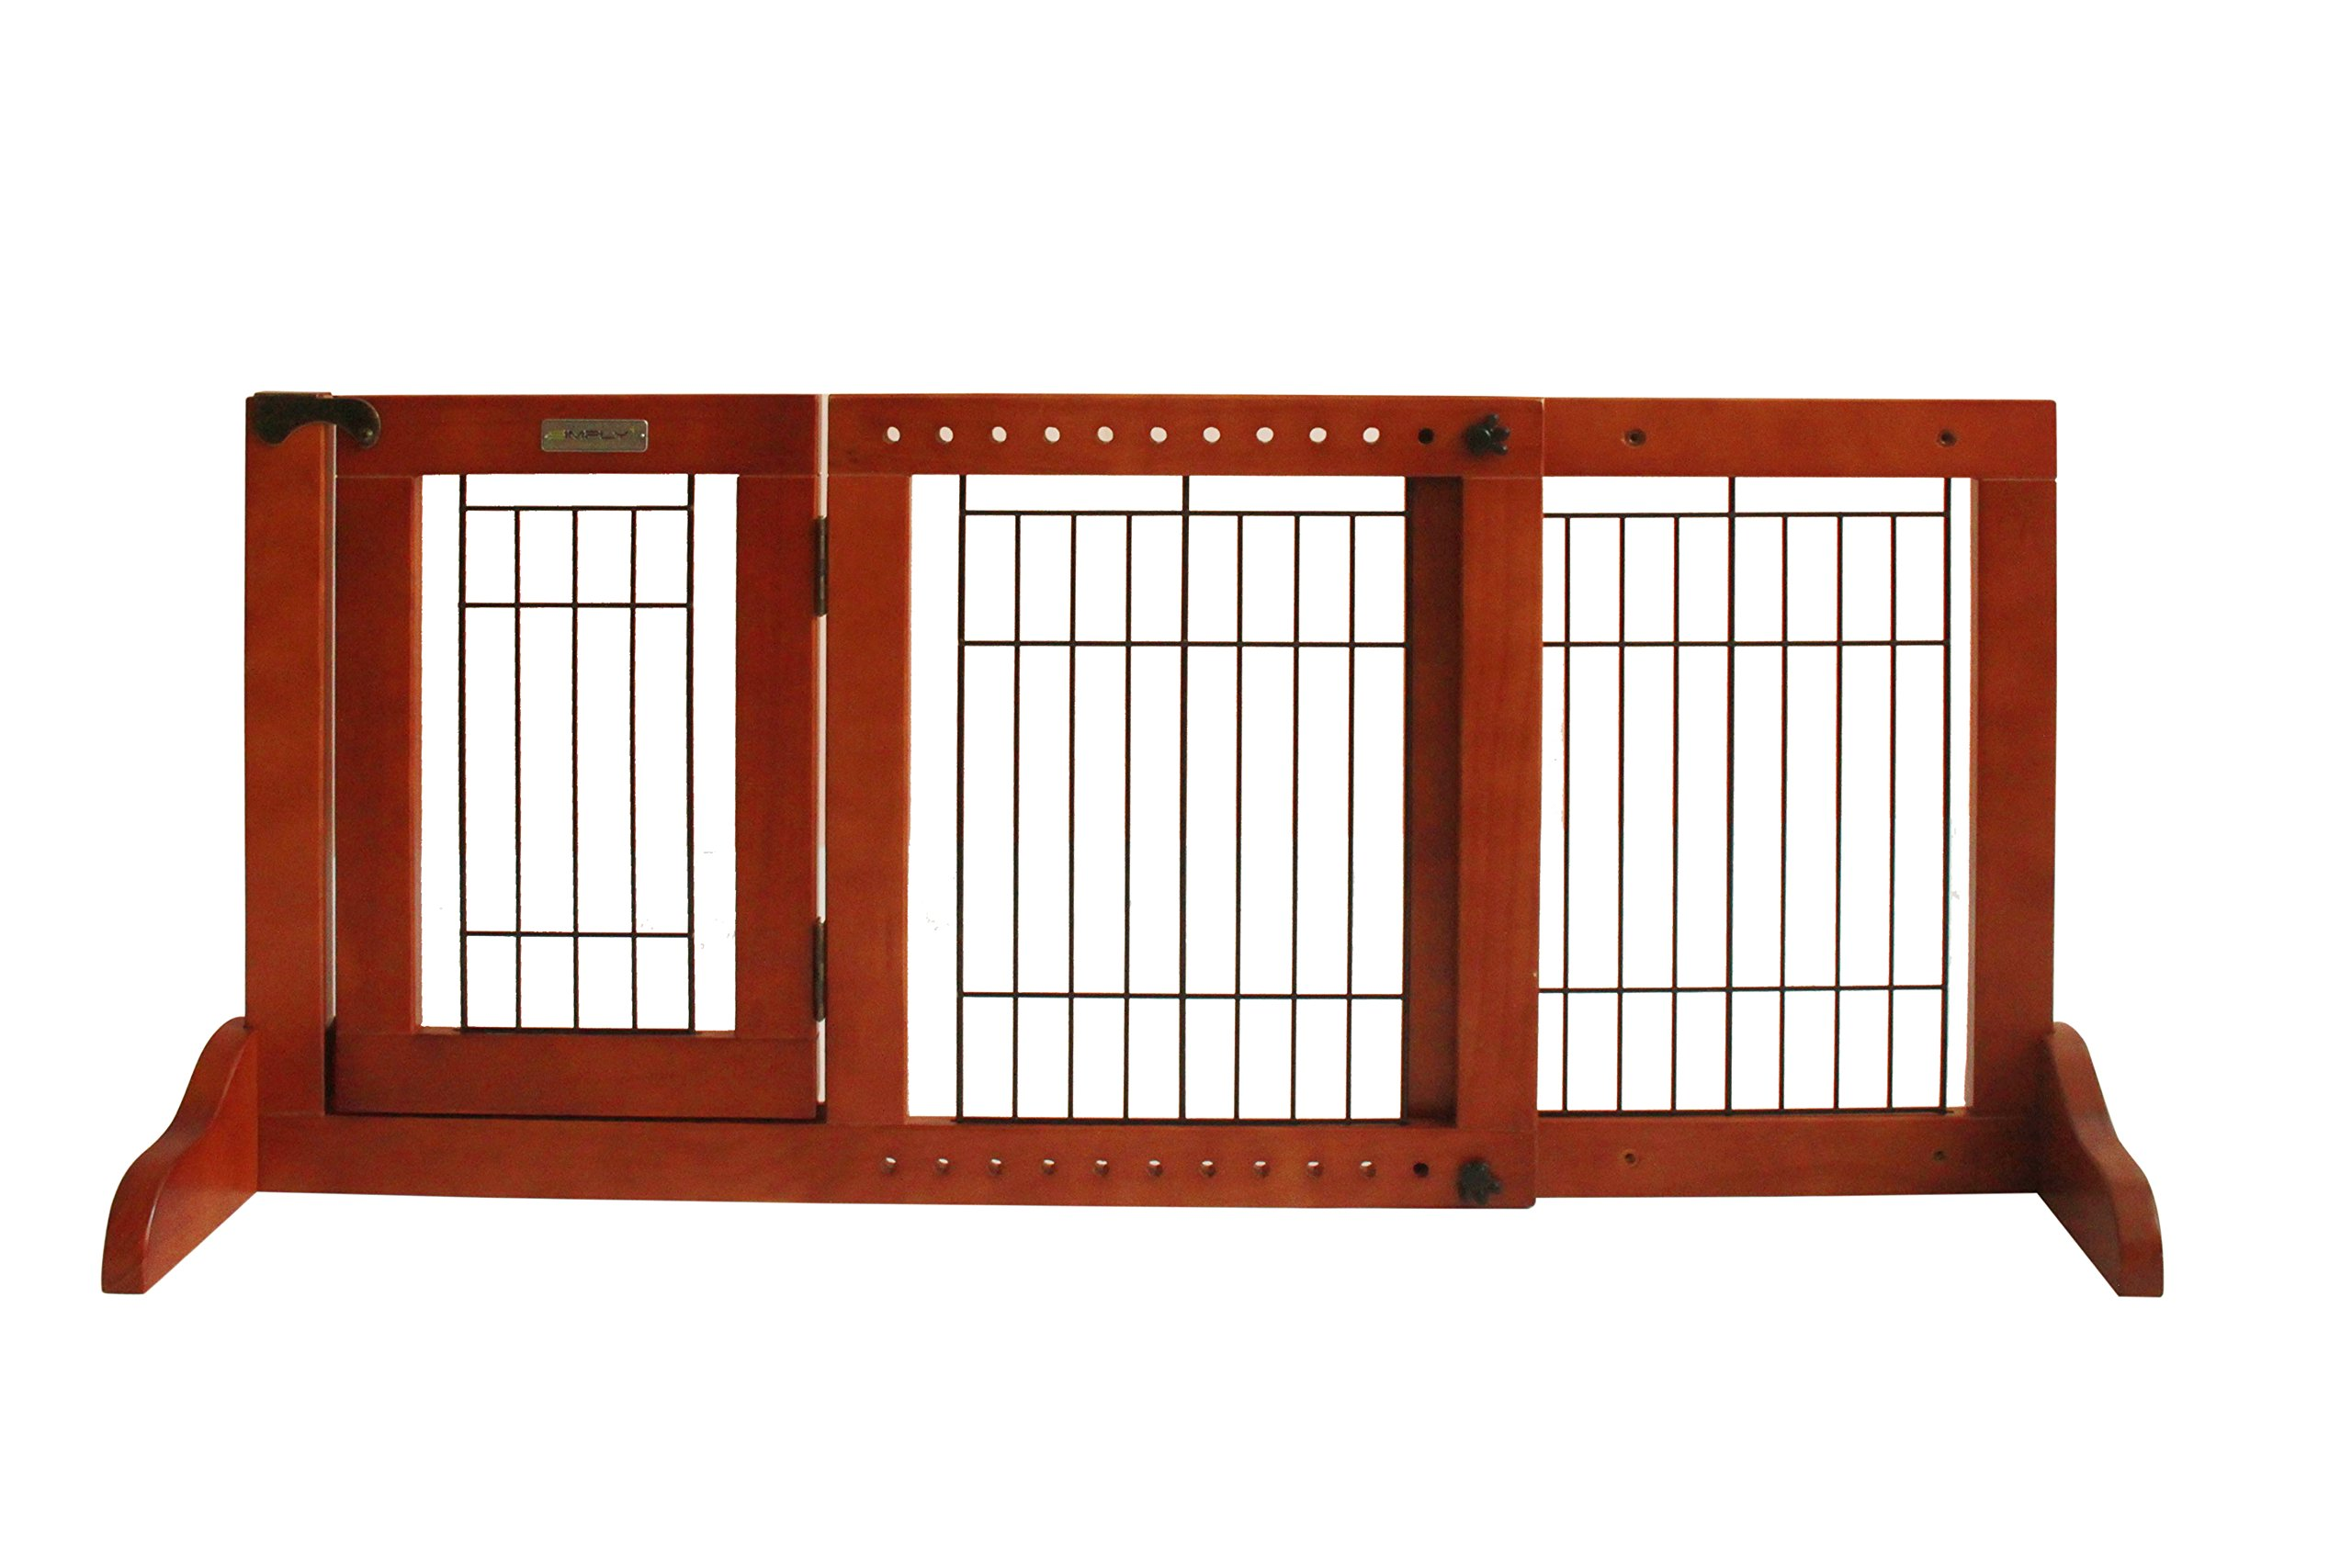 Simply Plus Wooden Pet Gate, Freestanding Pet Dog Gate, For Indoor Home & Office Use. Keeps Pets Safe . Easy Set Up, No Tools Required-Medium